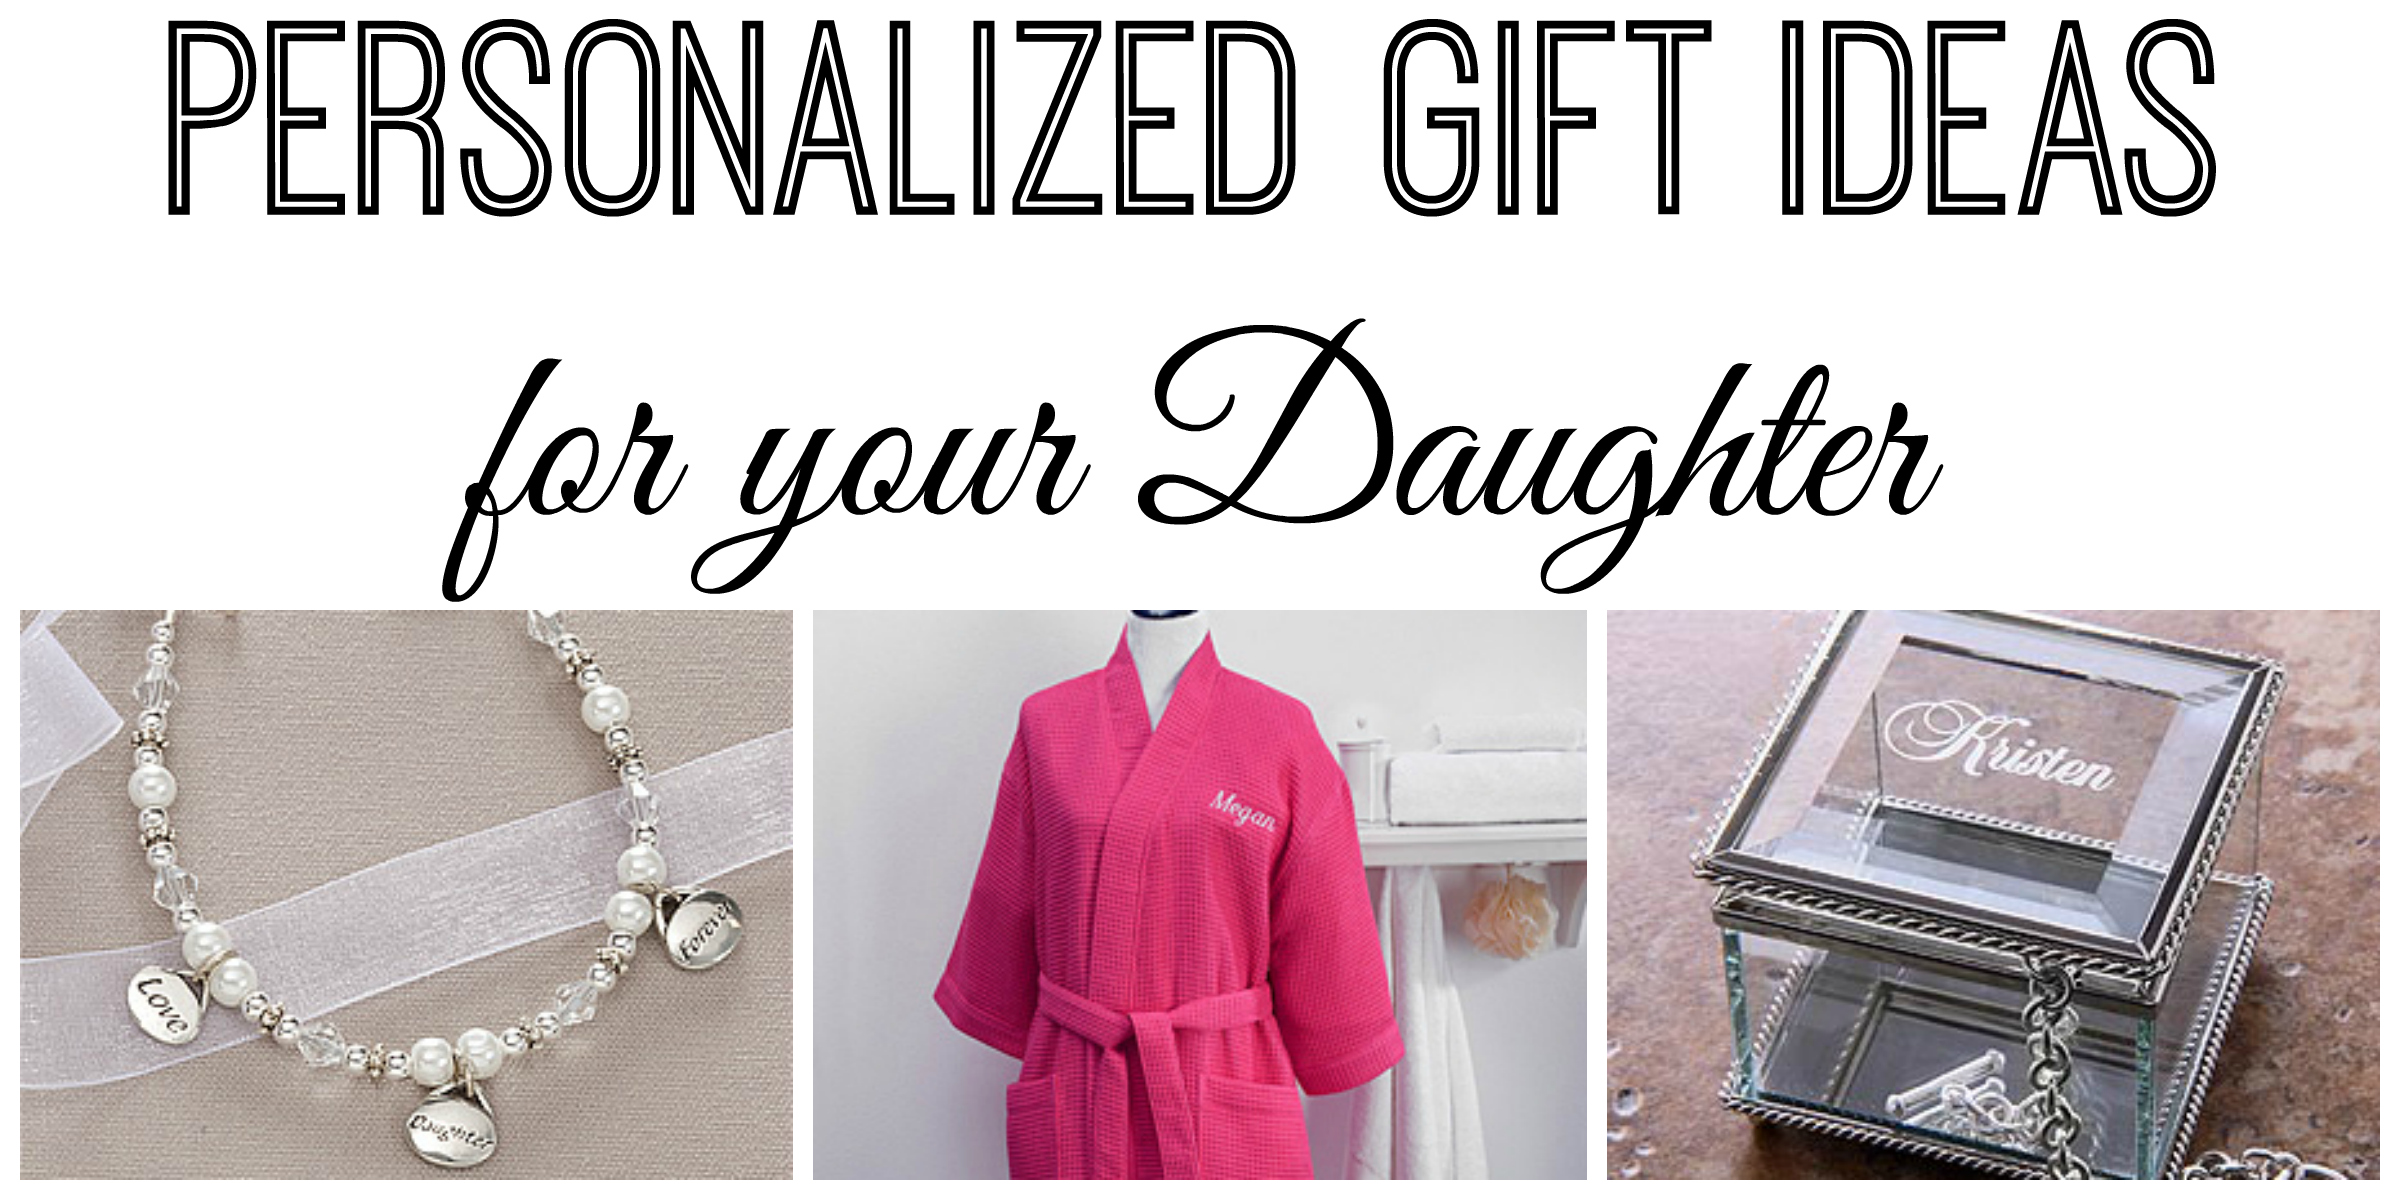 Personalized Christmas Gift Ideas For Your Daughter